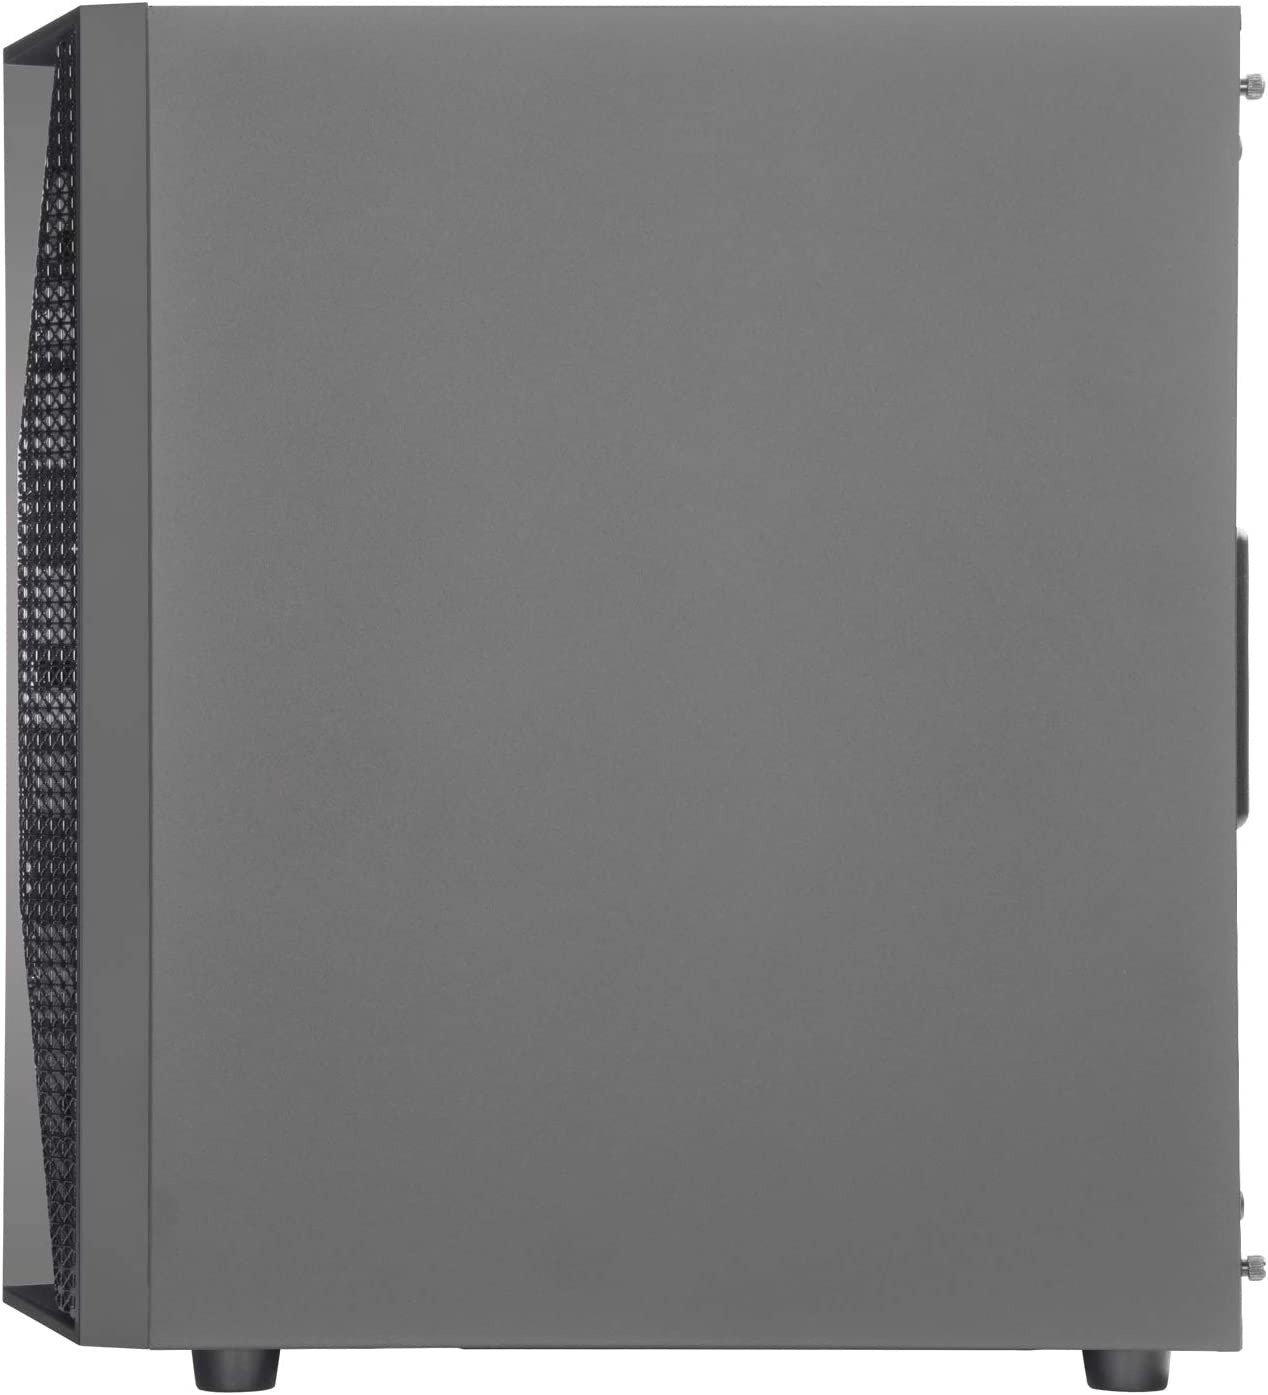 SST-FAB1B-G Micro-ATX Silverstone FARA B1 ATX Mini-ITX Black Color with Lightly Tinted Tempered Glass Side Panel Included for displaying Your Uniquely Built System